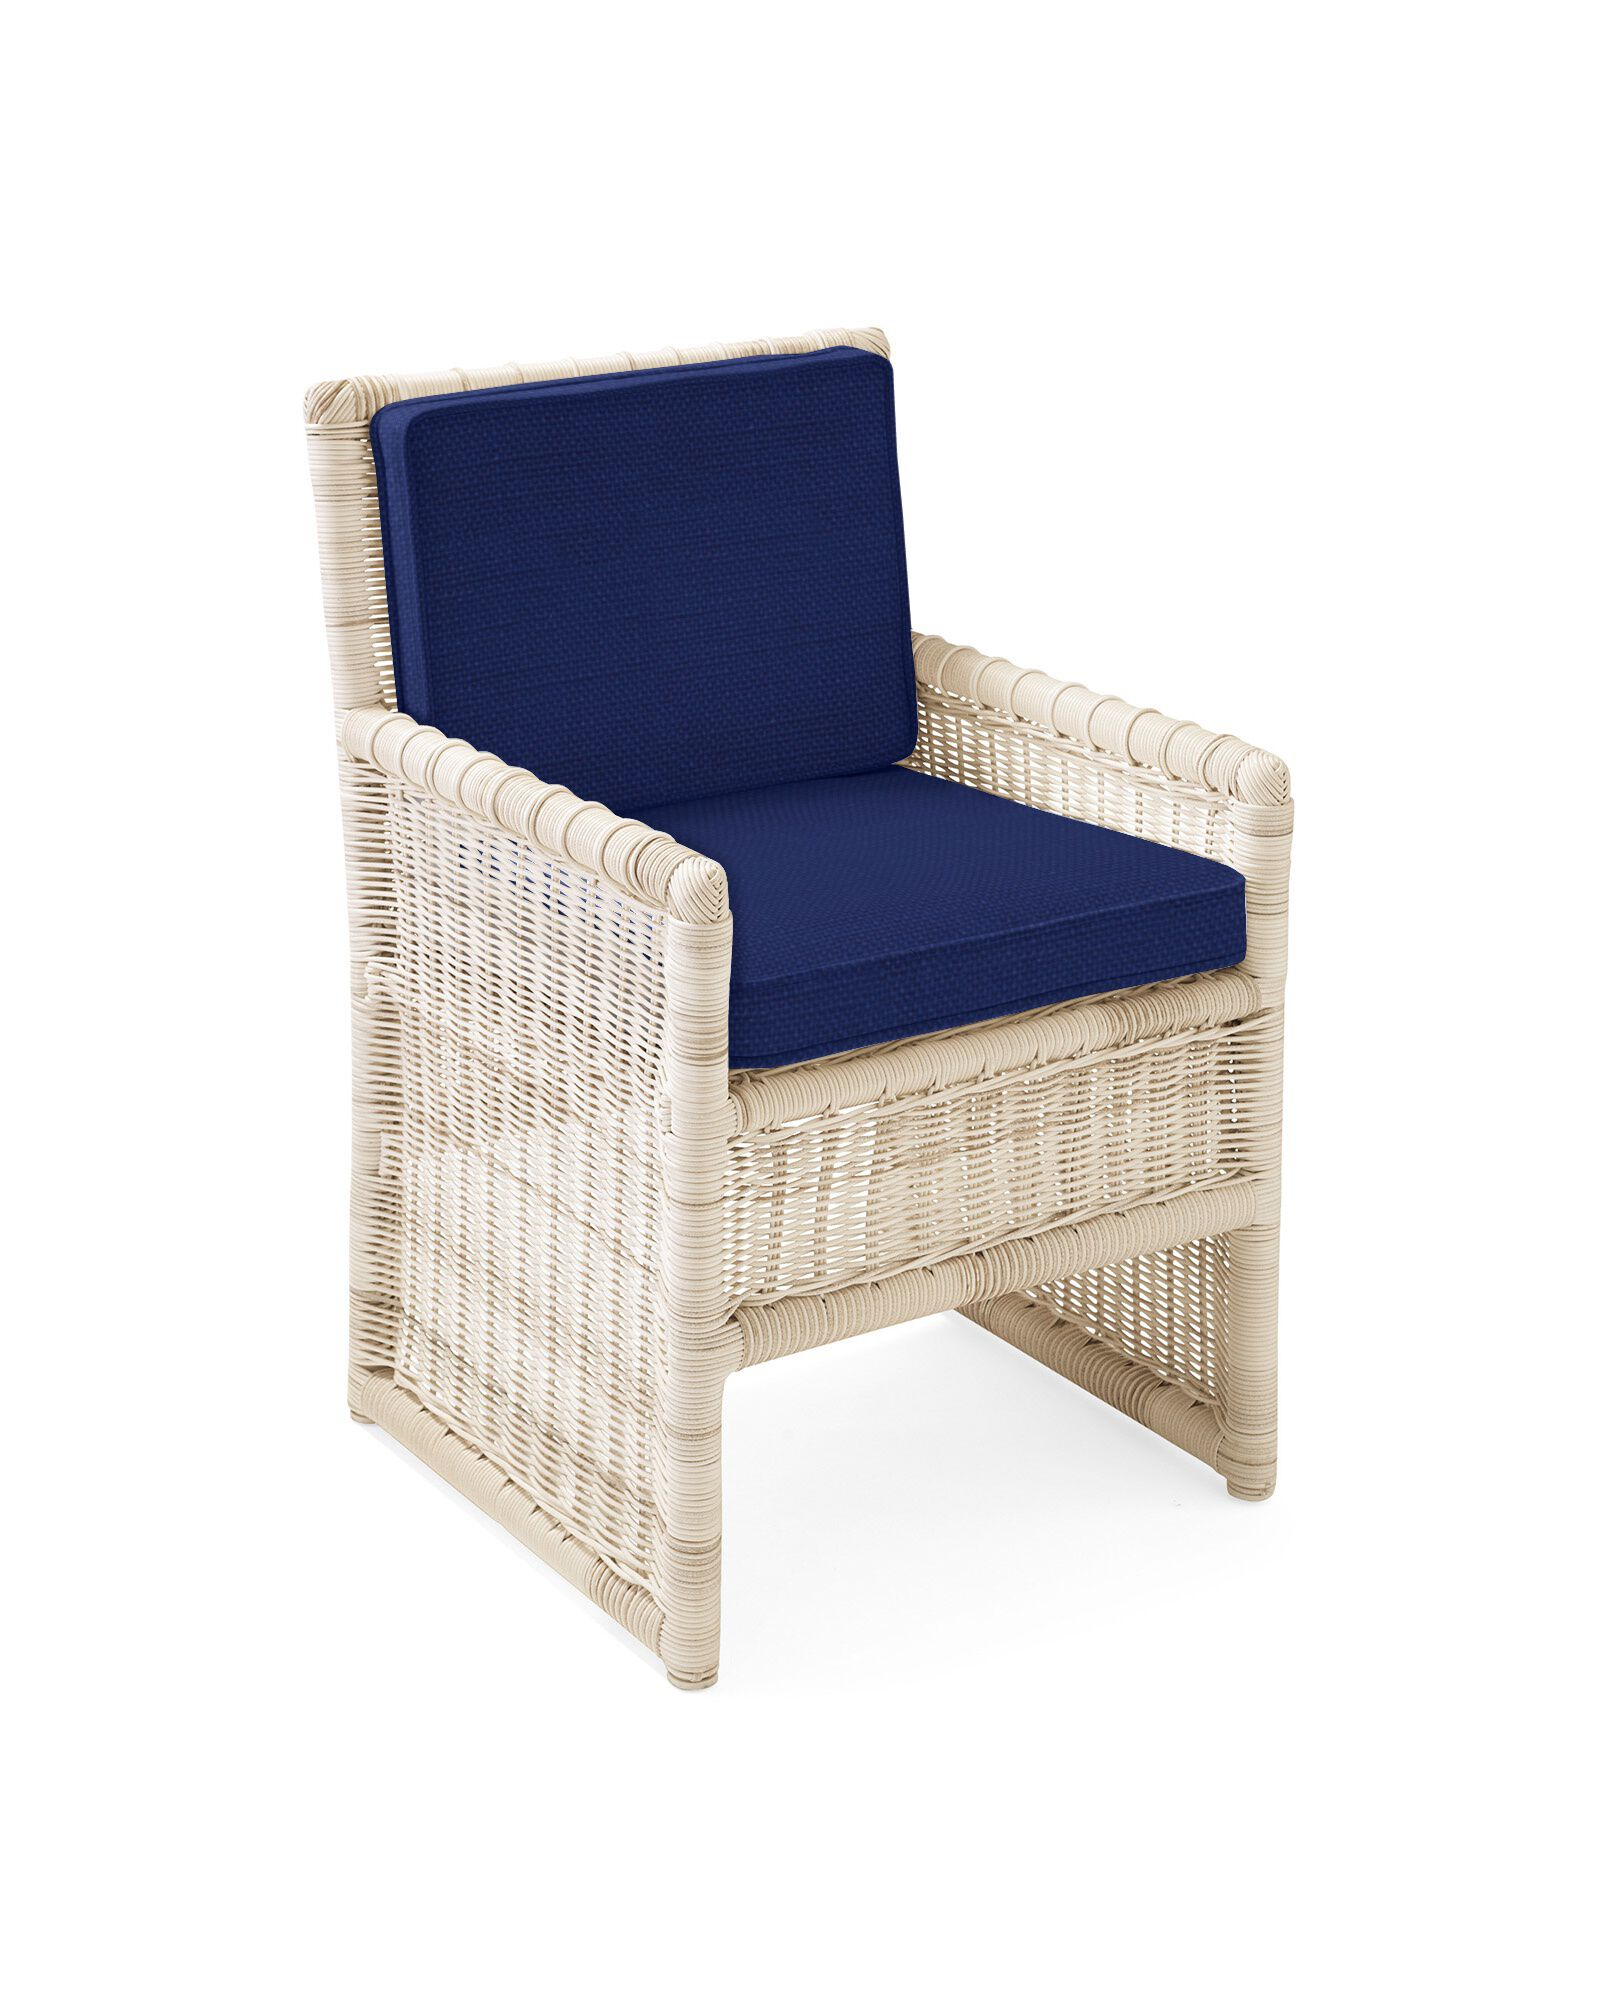 Cushion Cover for Pacifica Dining Chair, Perennials Basketweave Navy